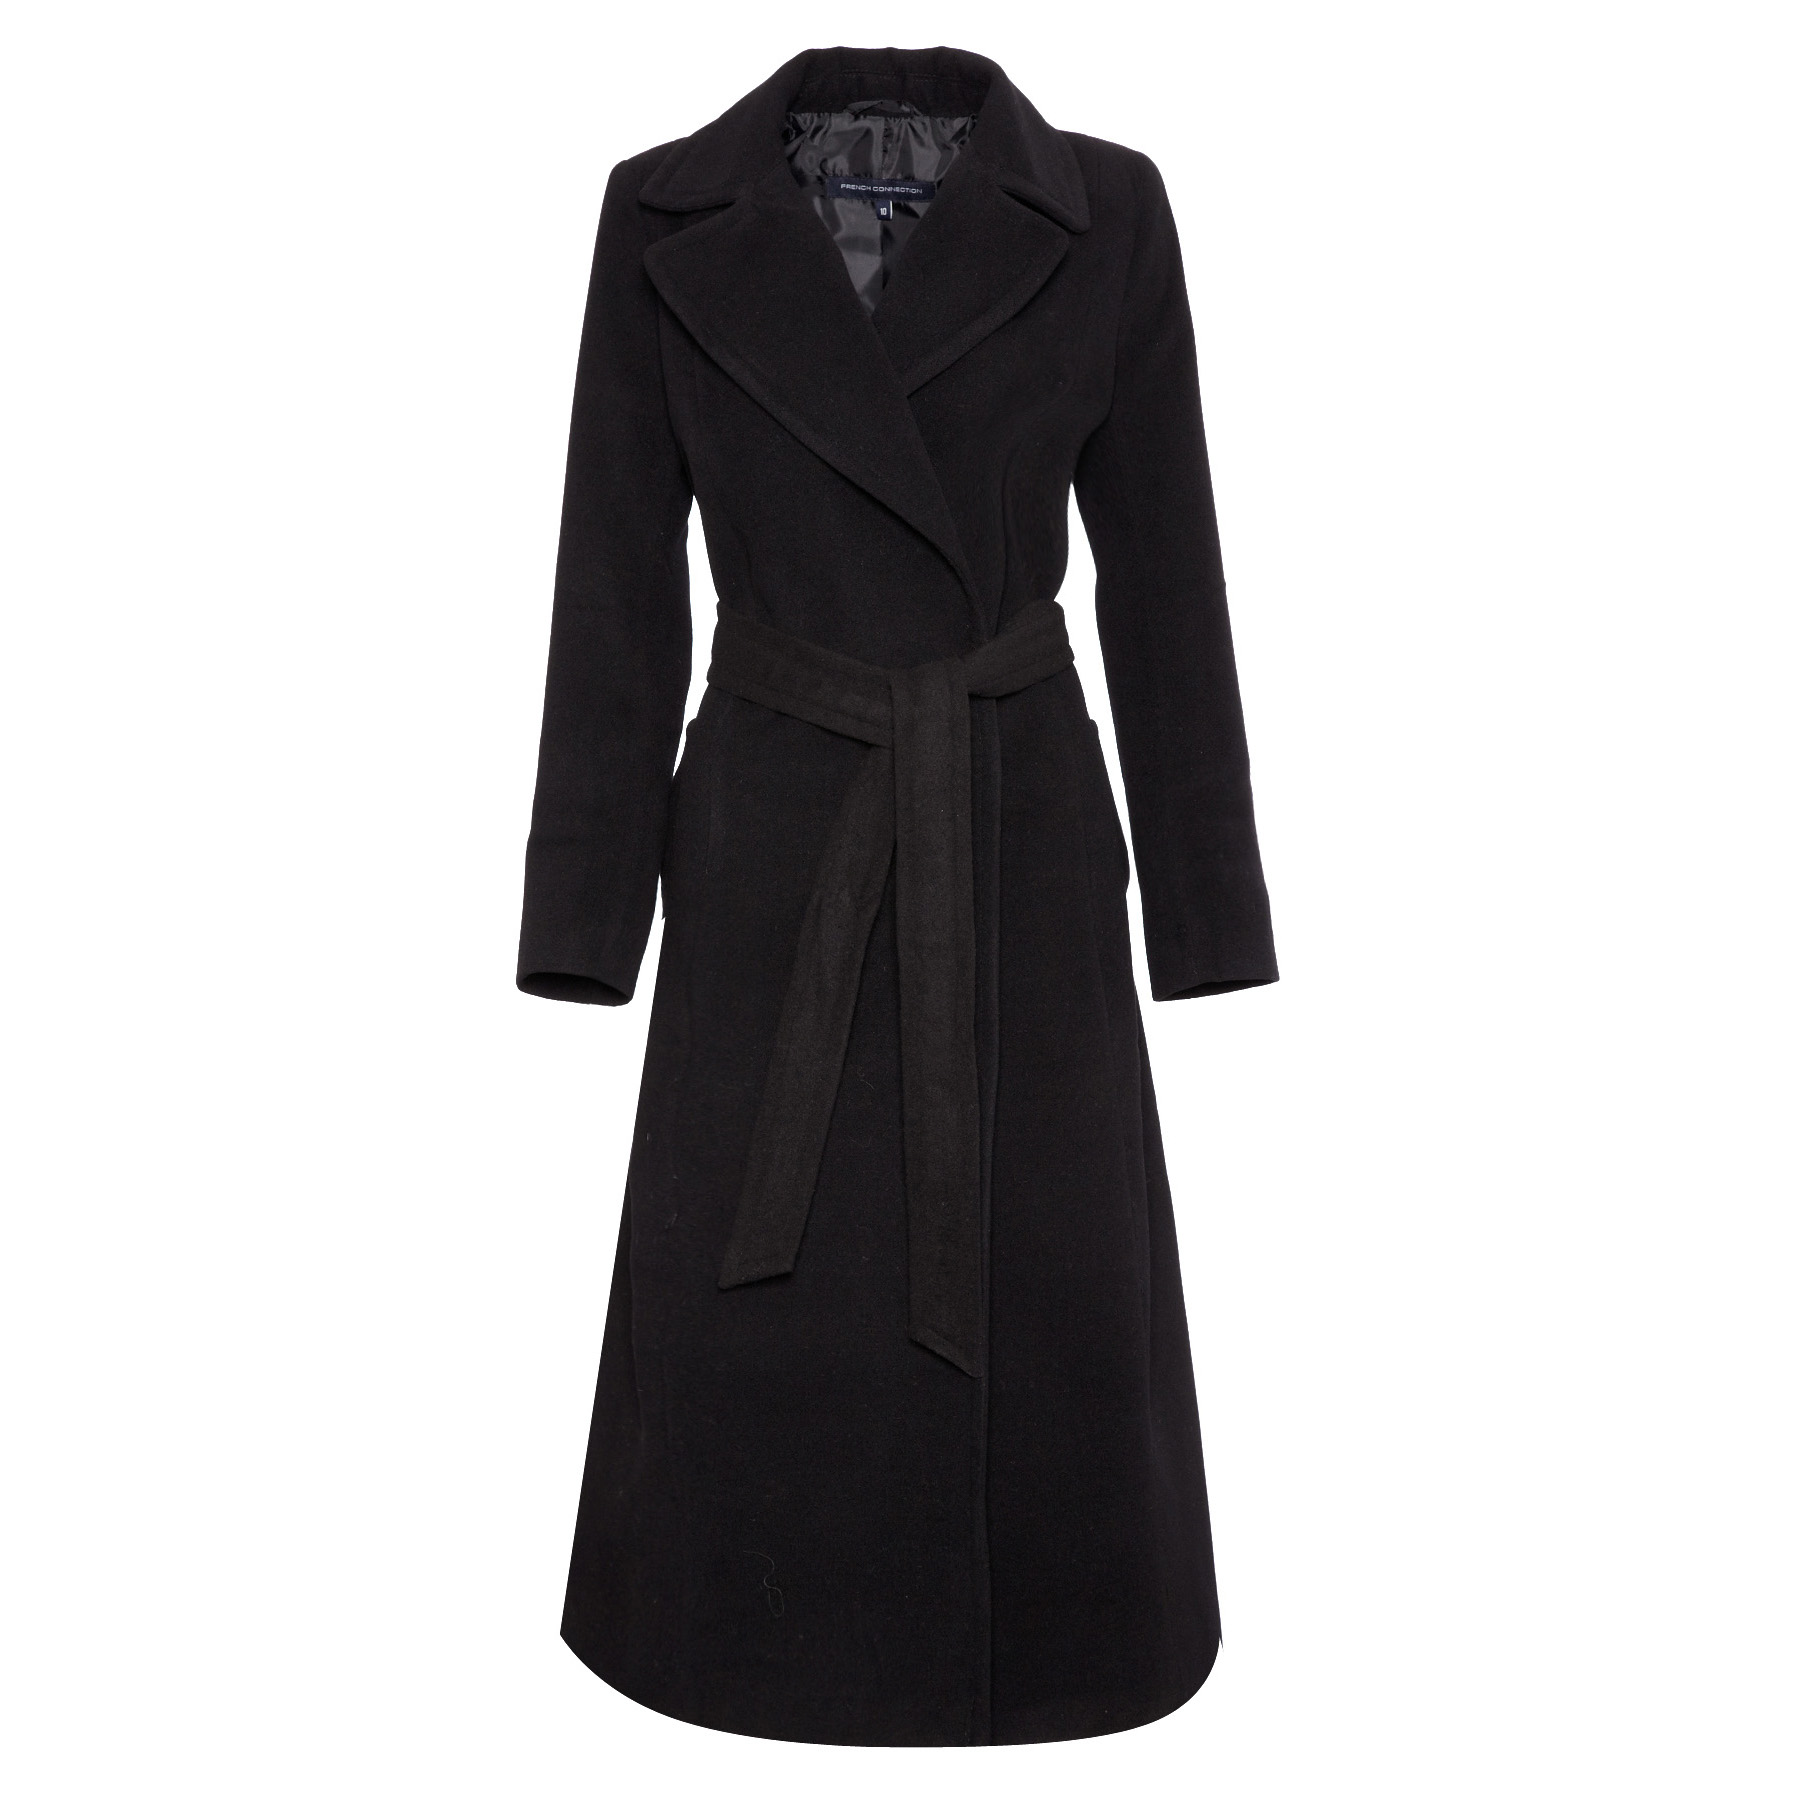 Full length wool coats for women